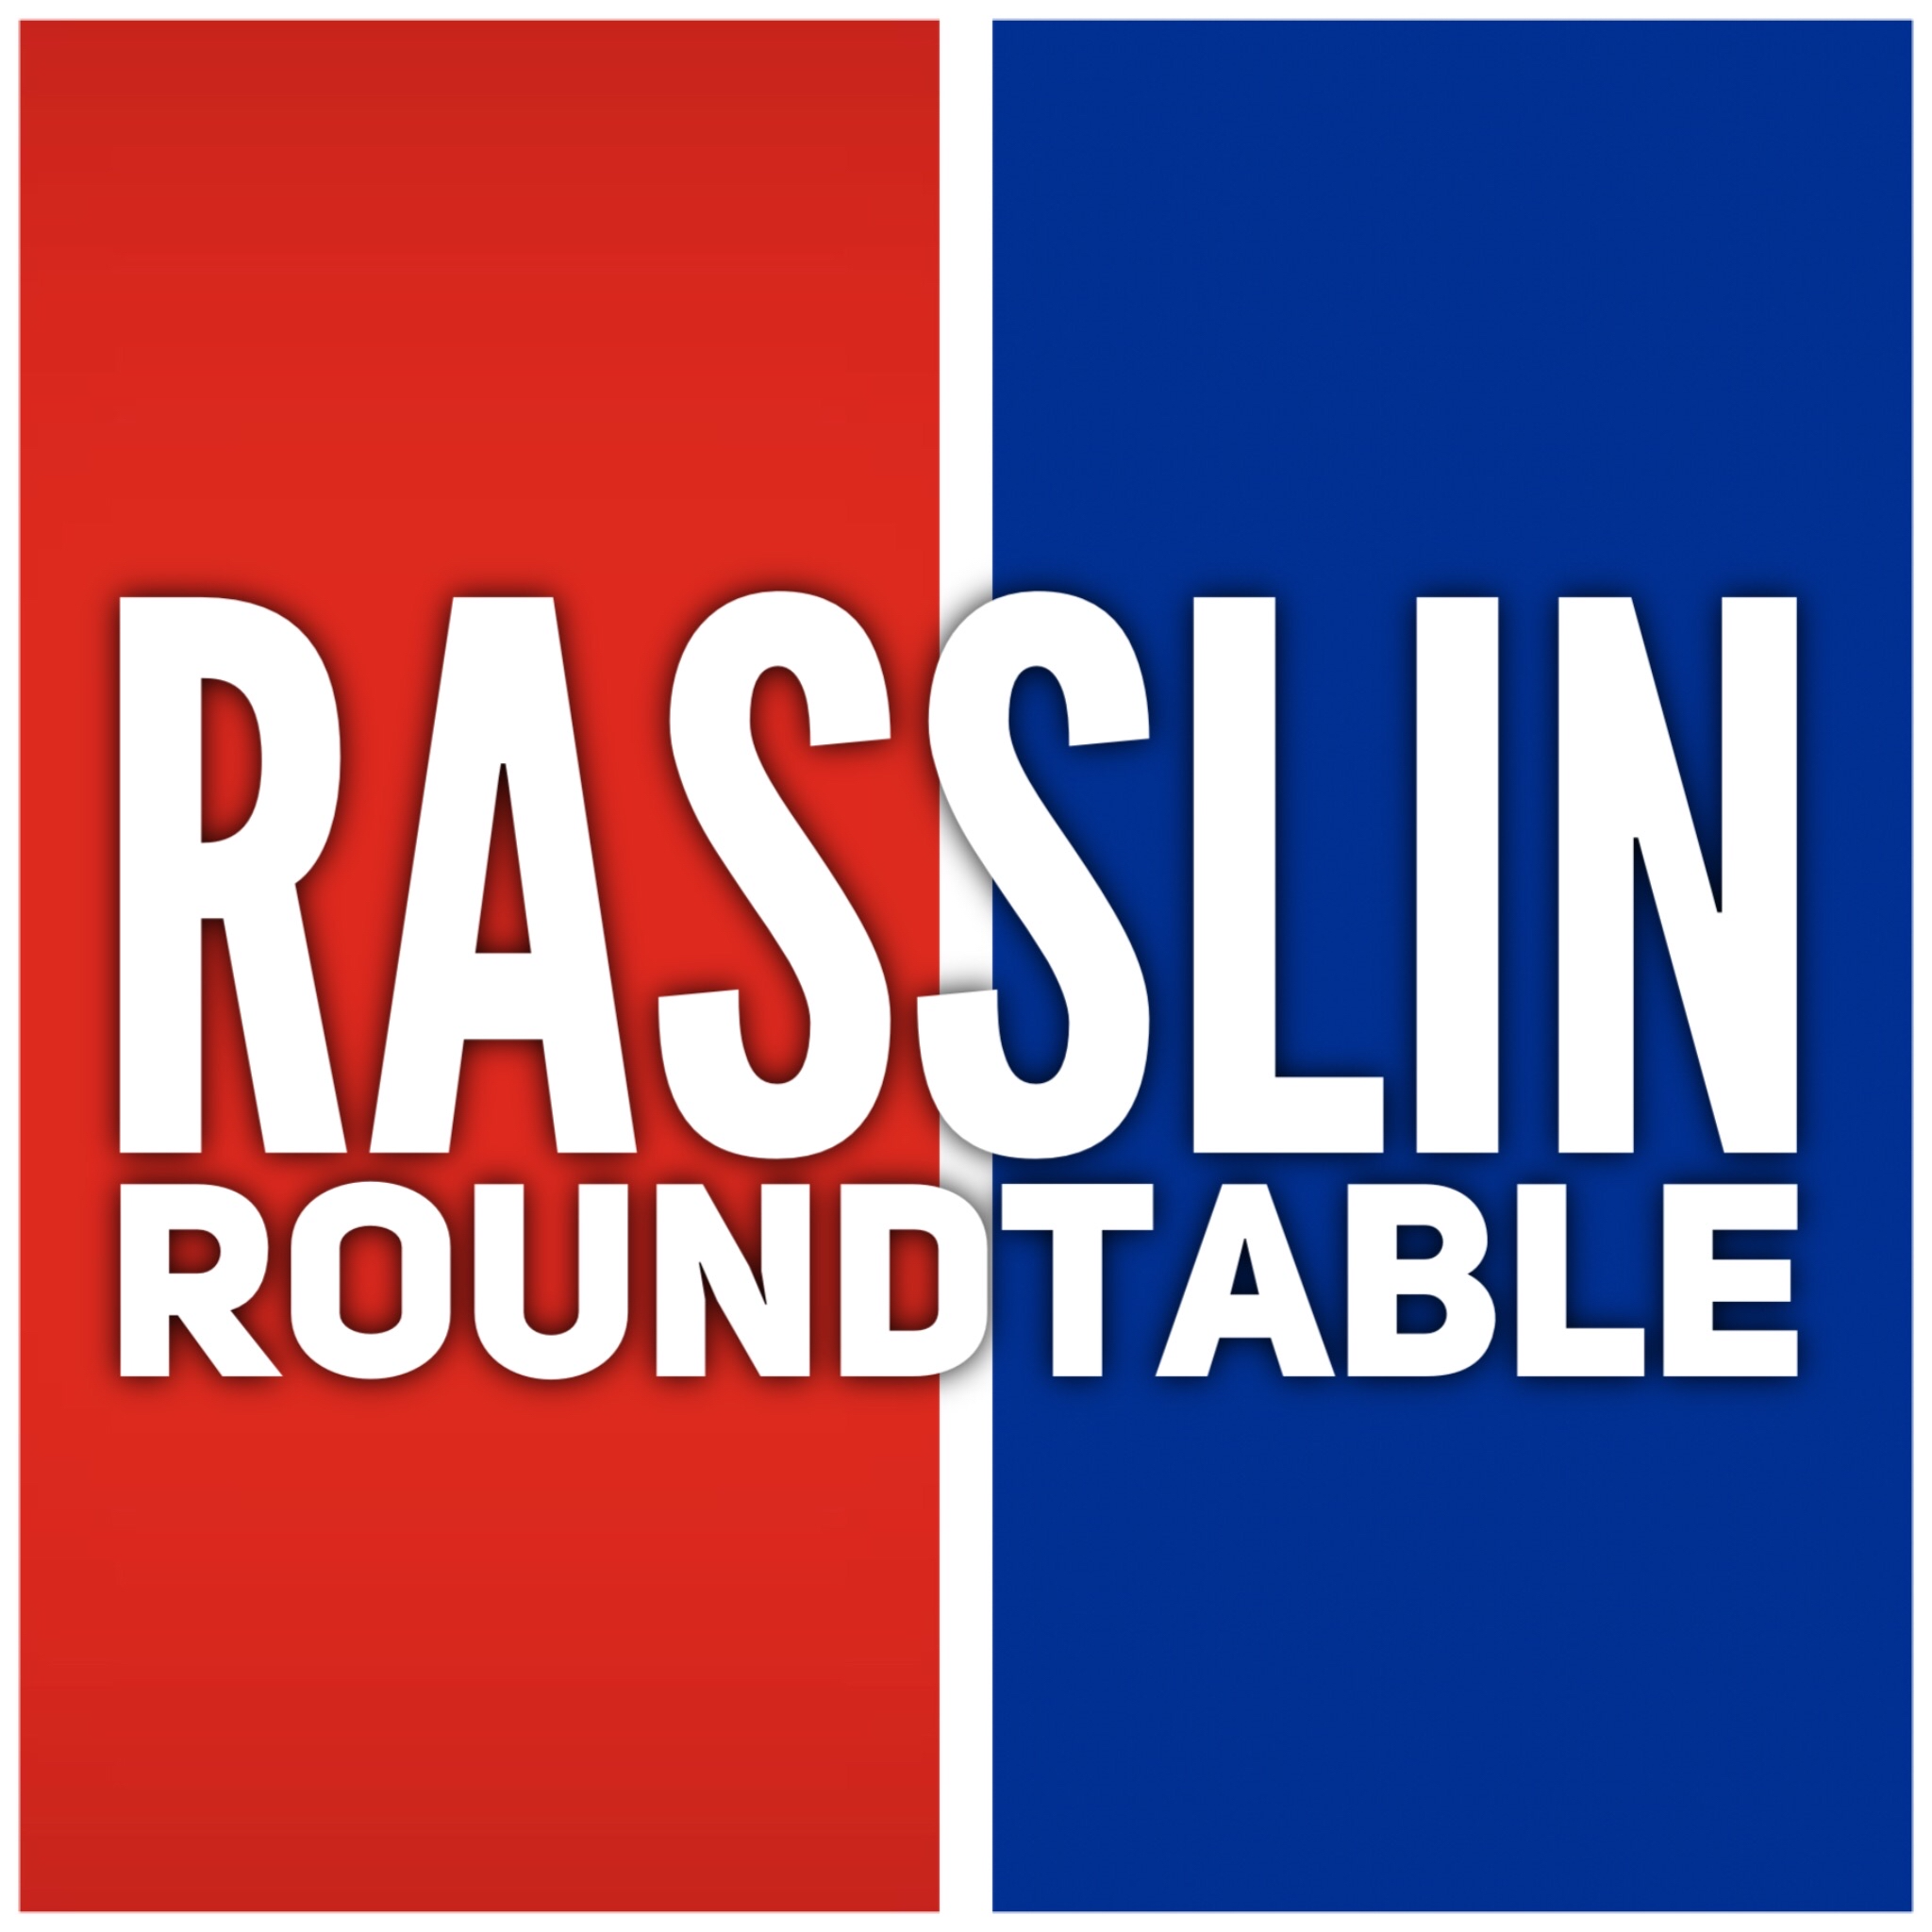 Rasslin Roundtable.PNG